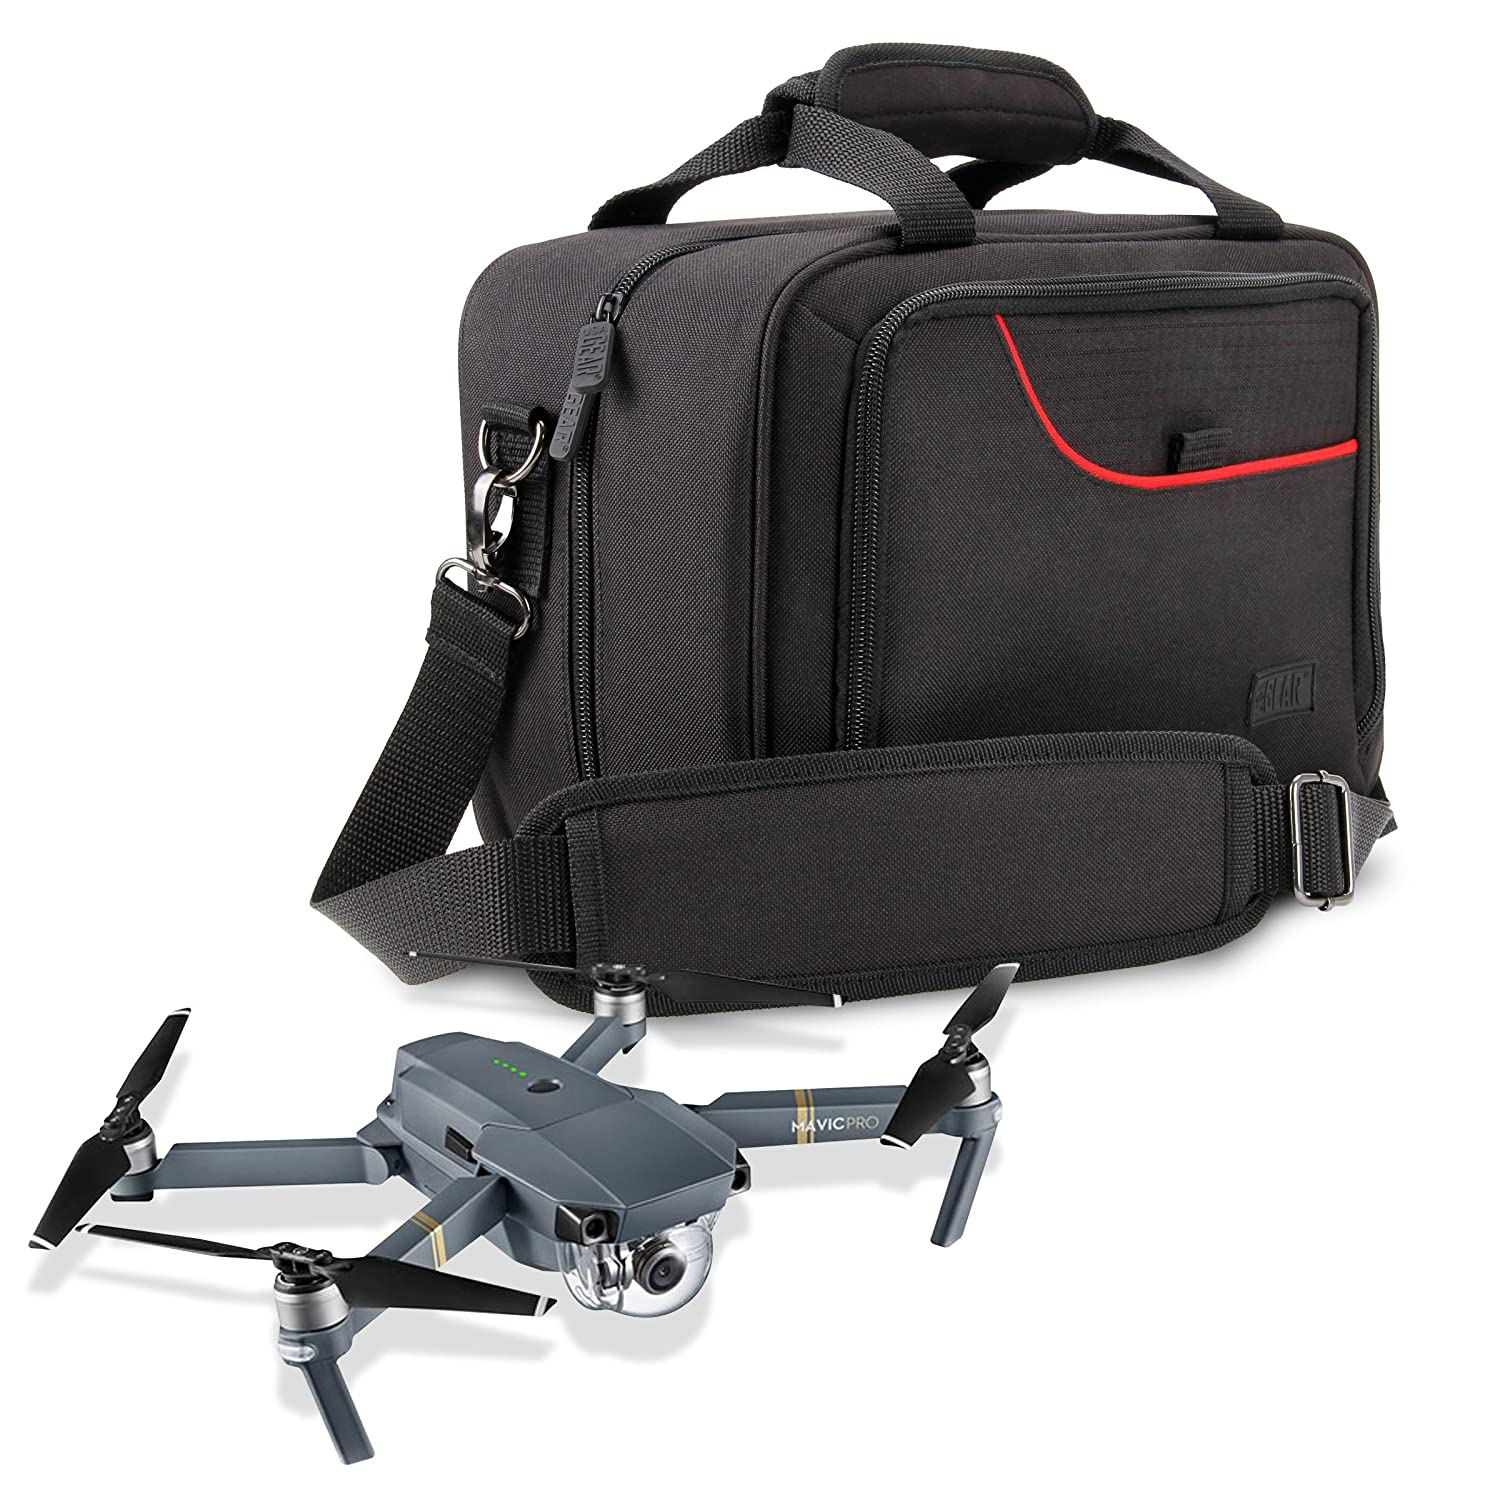 USA Gear Drone Carrying Case DJI Mavic Pro Spark Mini Mavic Air Strap Adjustable Dividers Storage Pockets Fits Drone Controller Batteries Propellers More